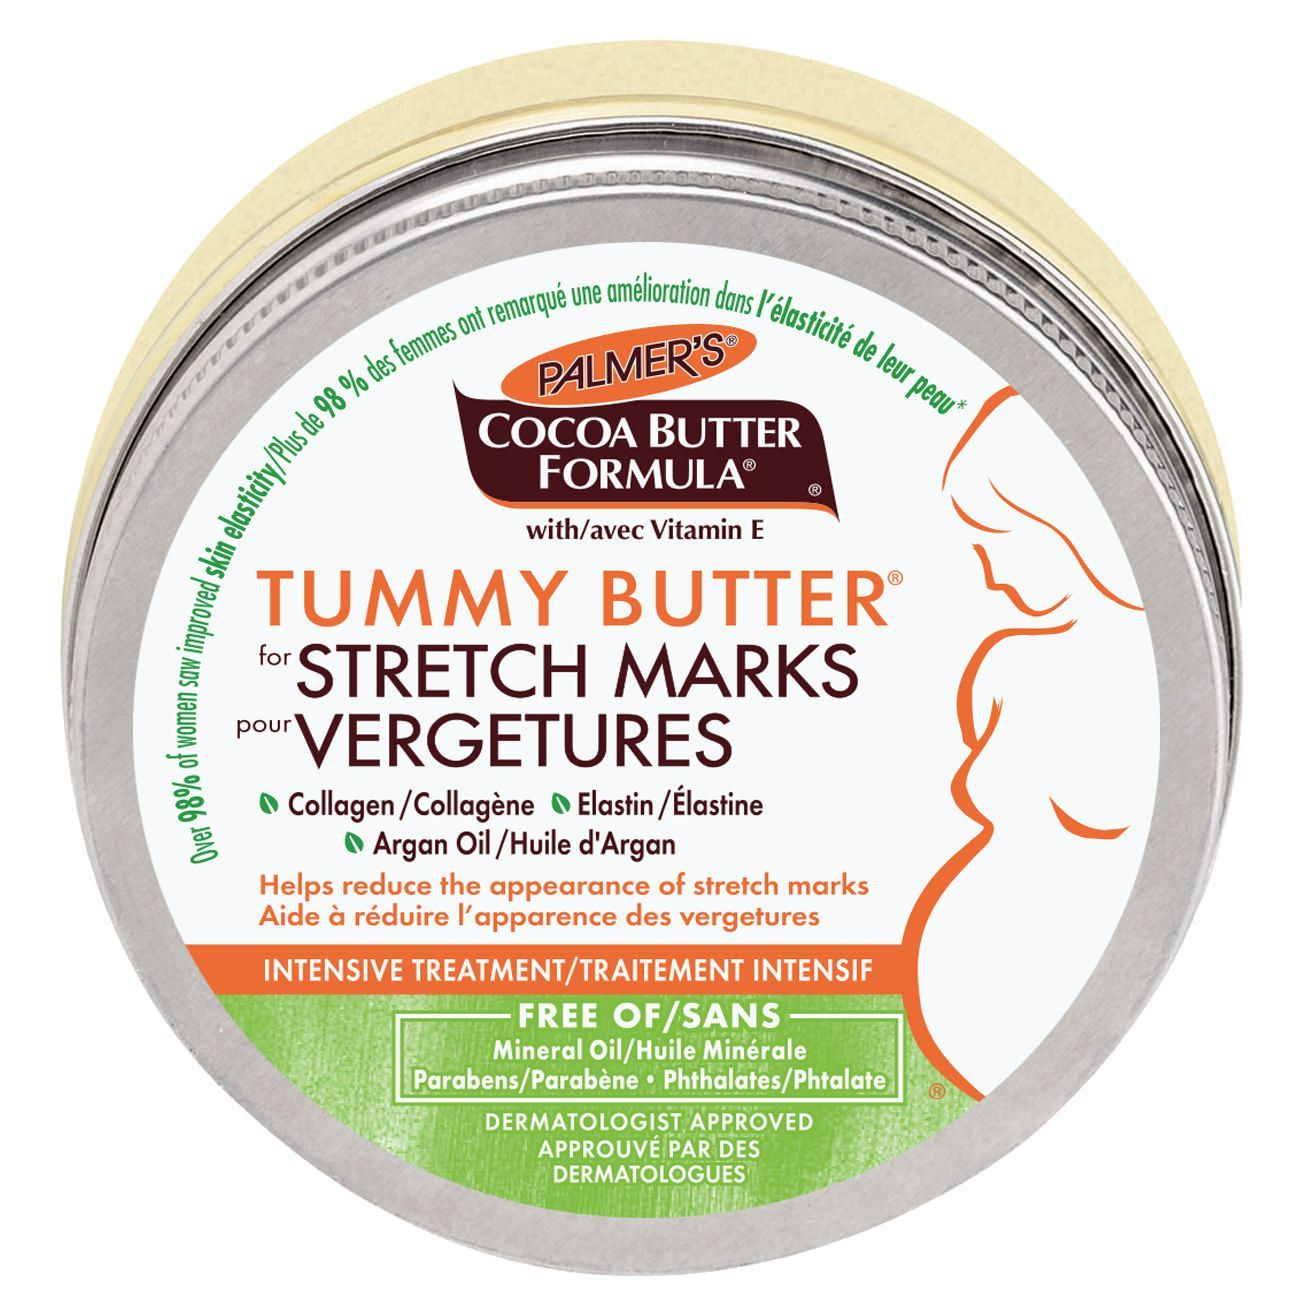 Palmer S Cocoa Butter Formula Tummy Butter For Stretch Marks